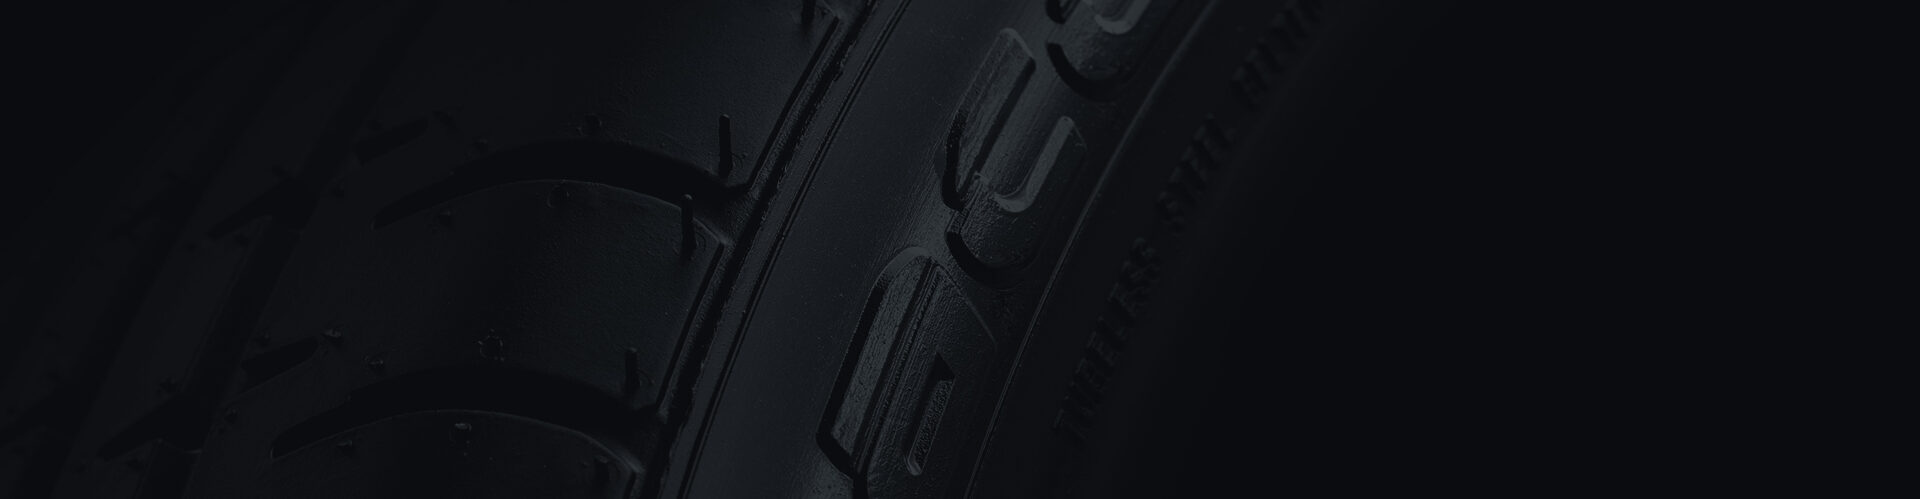 aboutus-banner